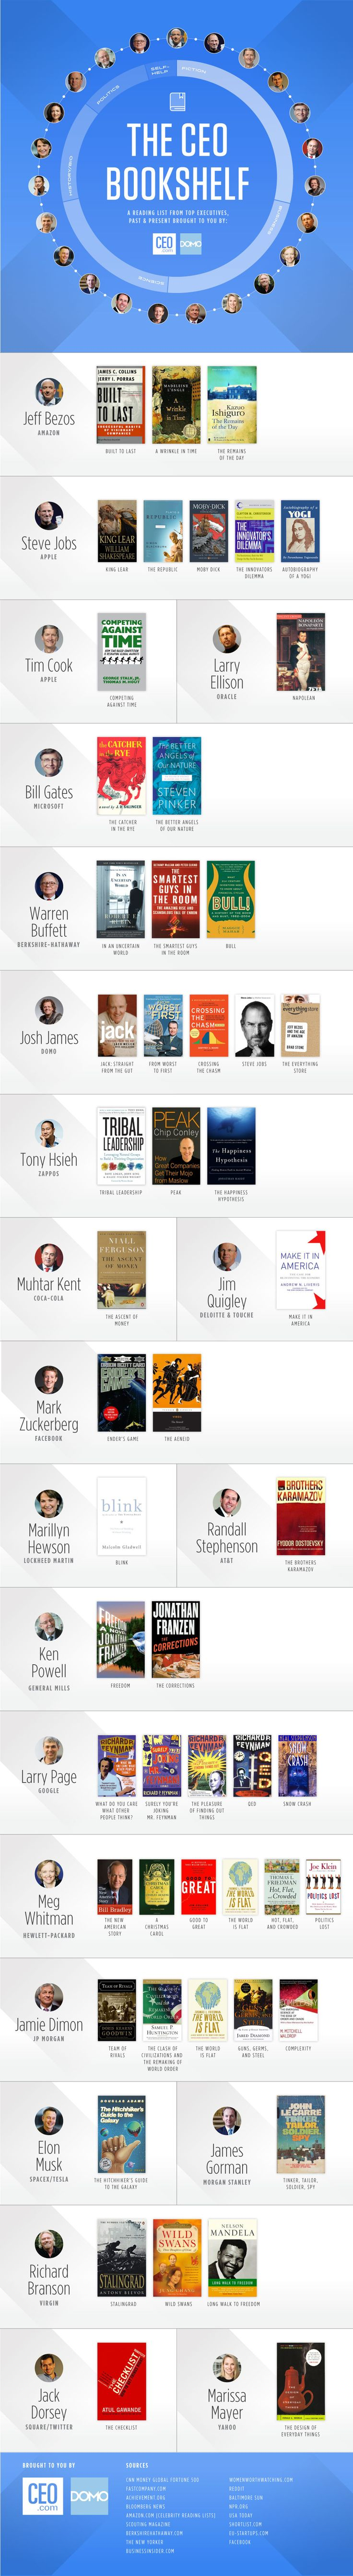 22 Top CEOs Reveal Their Favorite Books (Infographic) | Inc.com. Elon Musk's is the best.